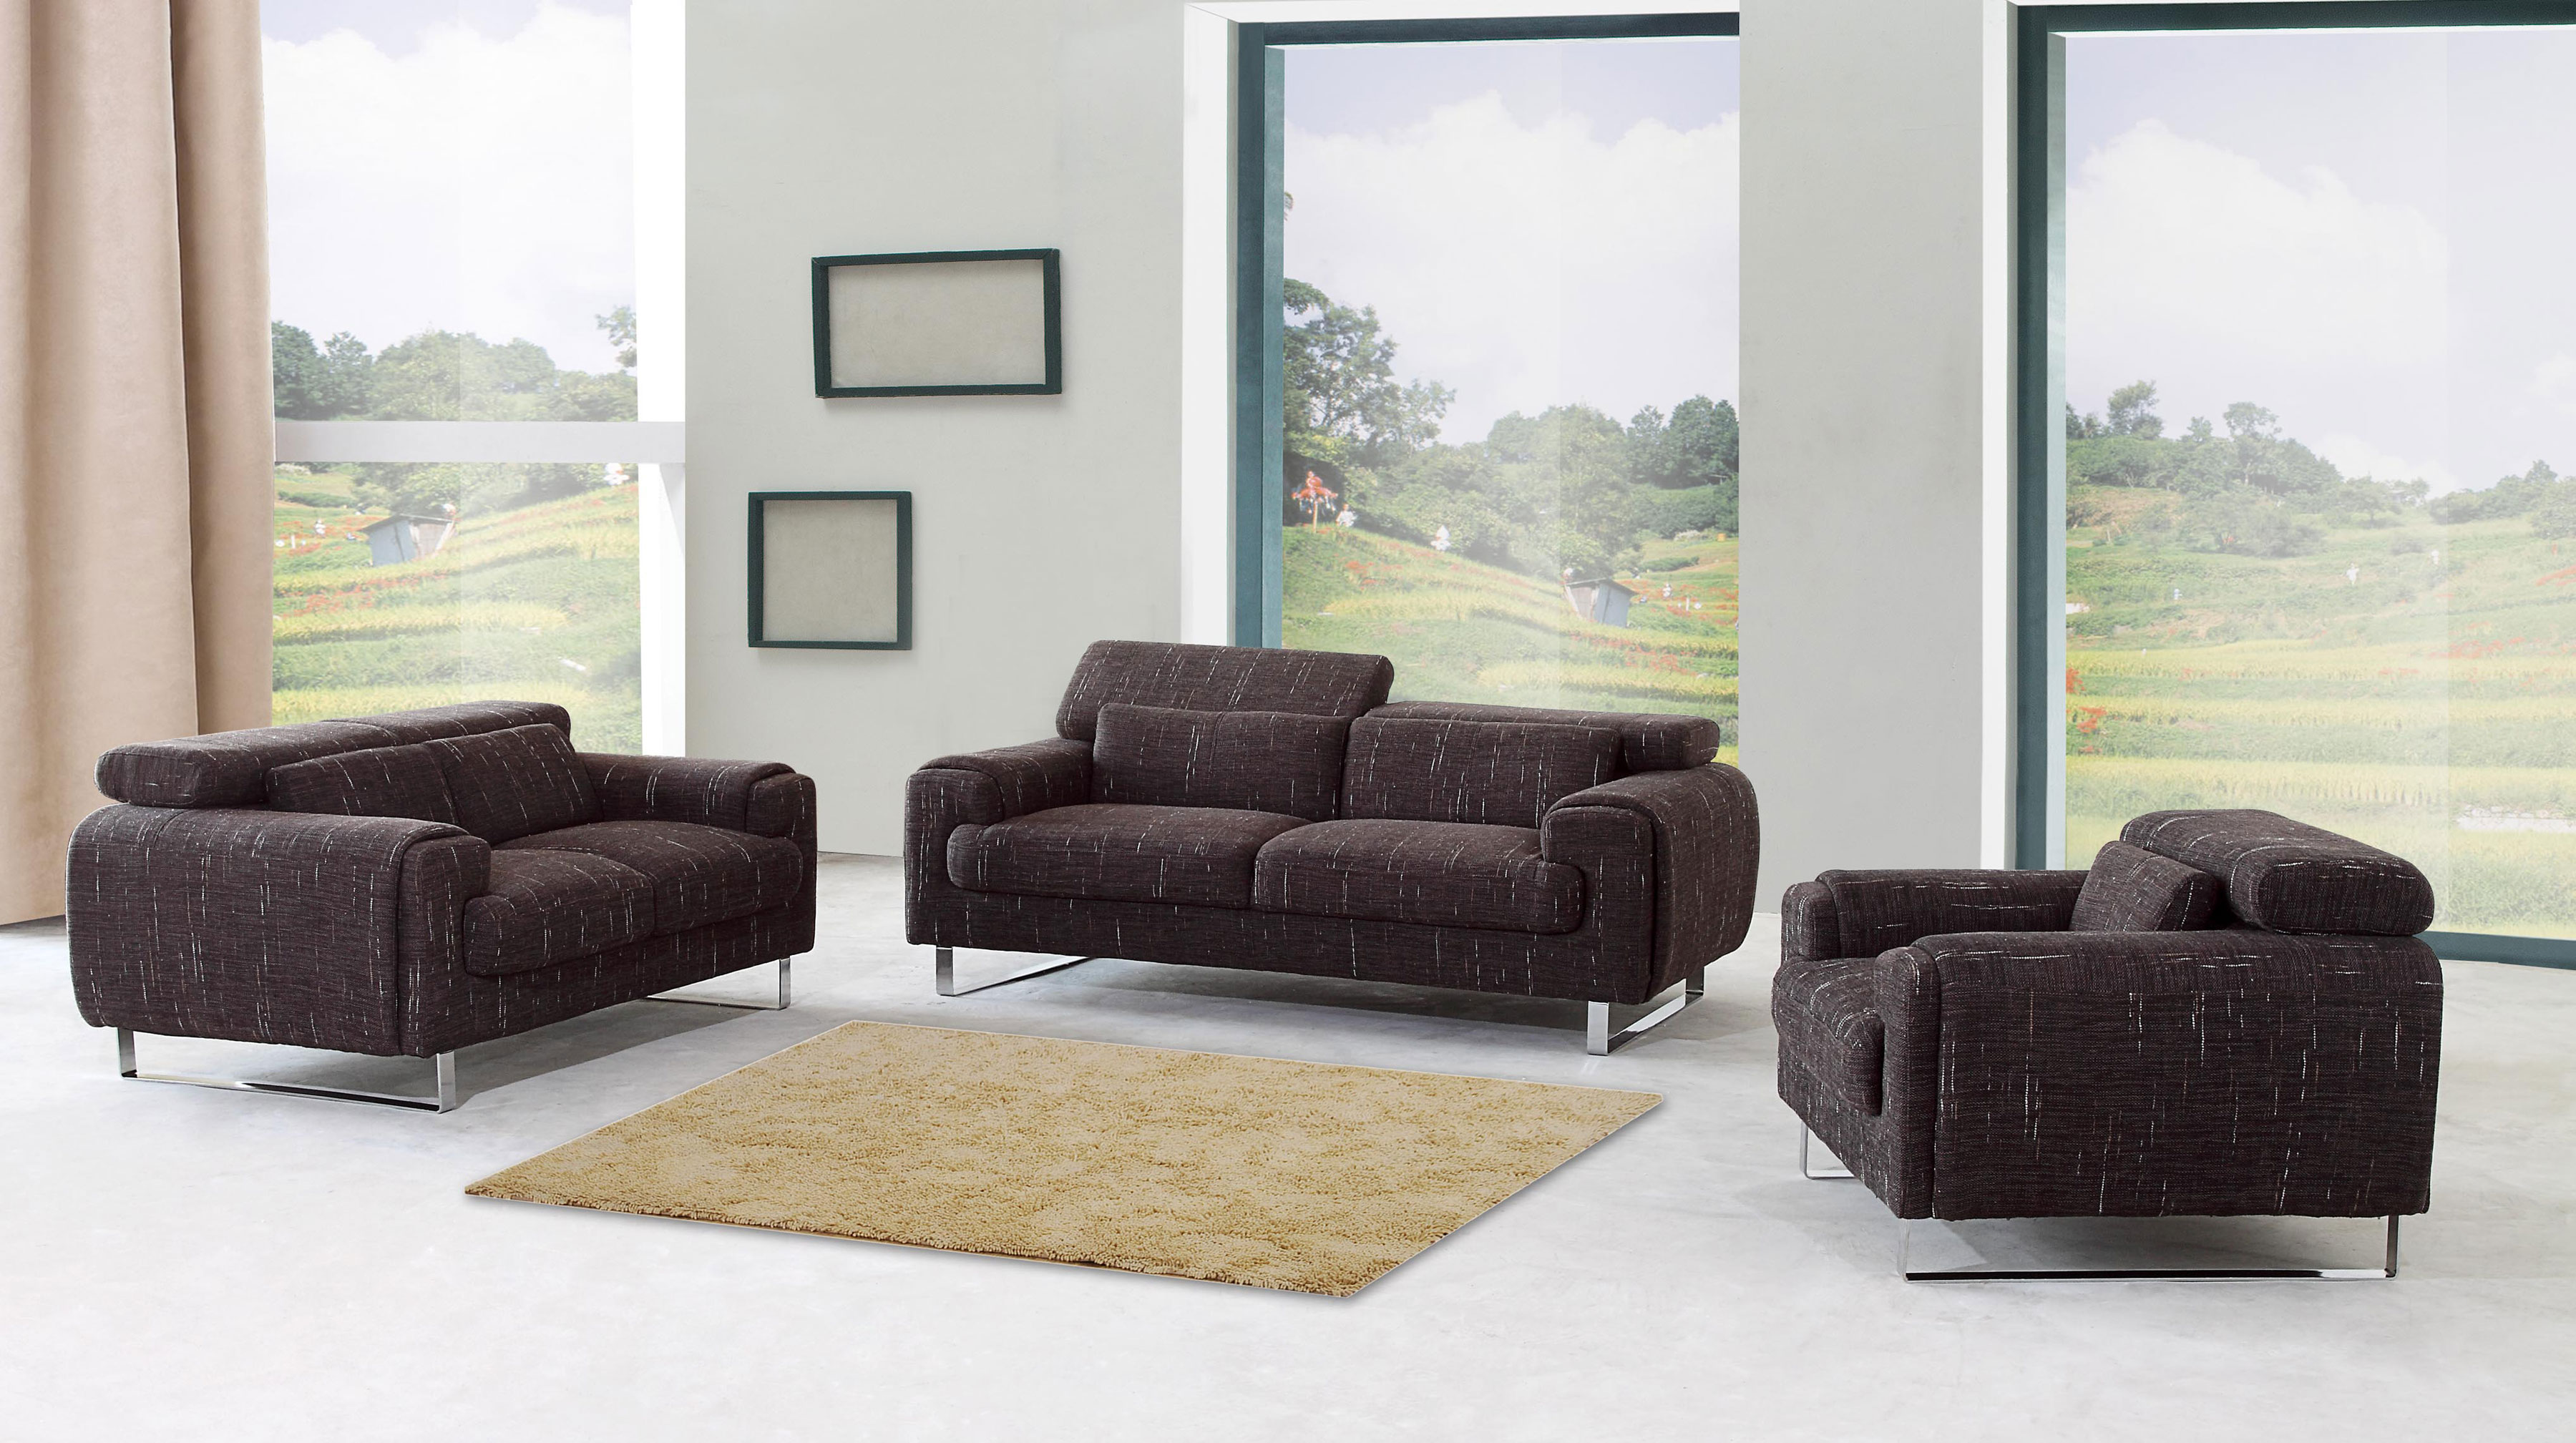 Exciting Front Room Furnishings For Living Room Ideas With Front Room Furnishings Outlet